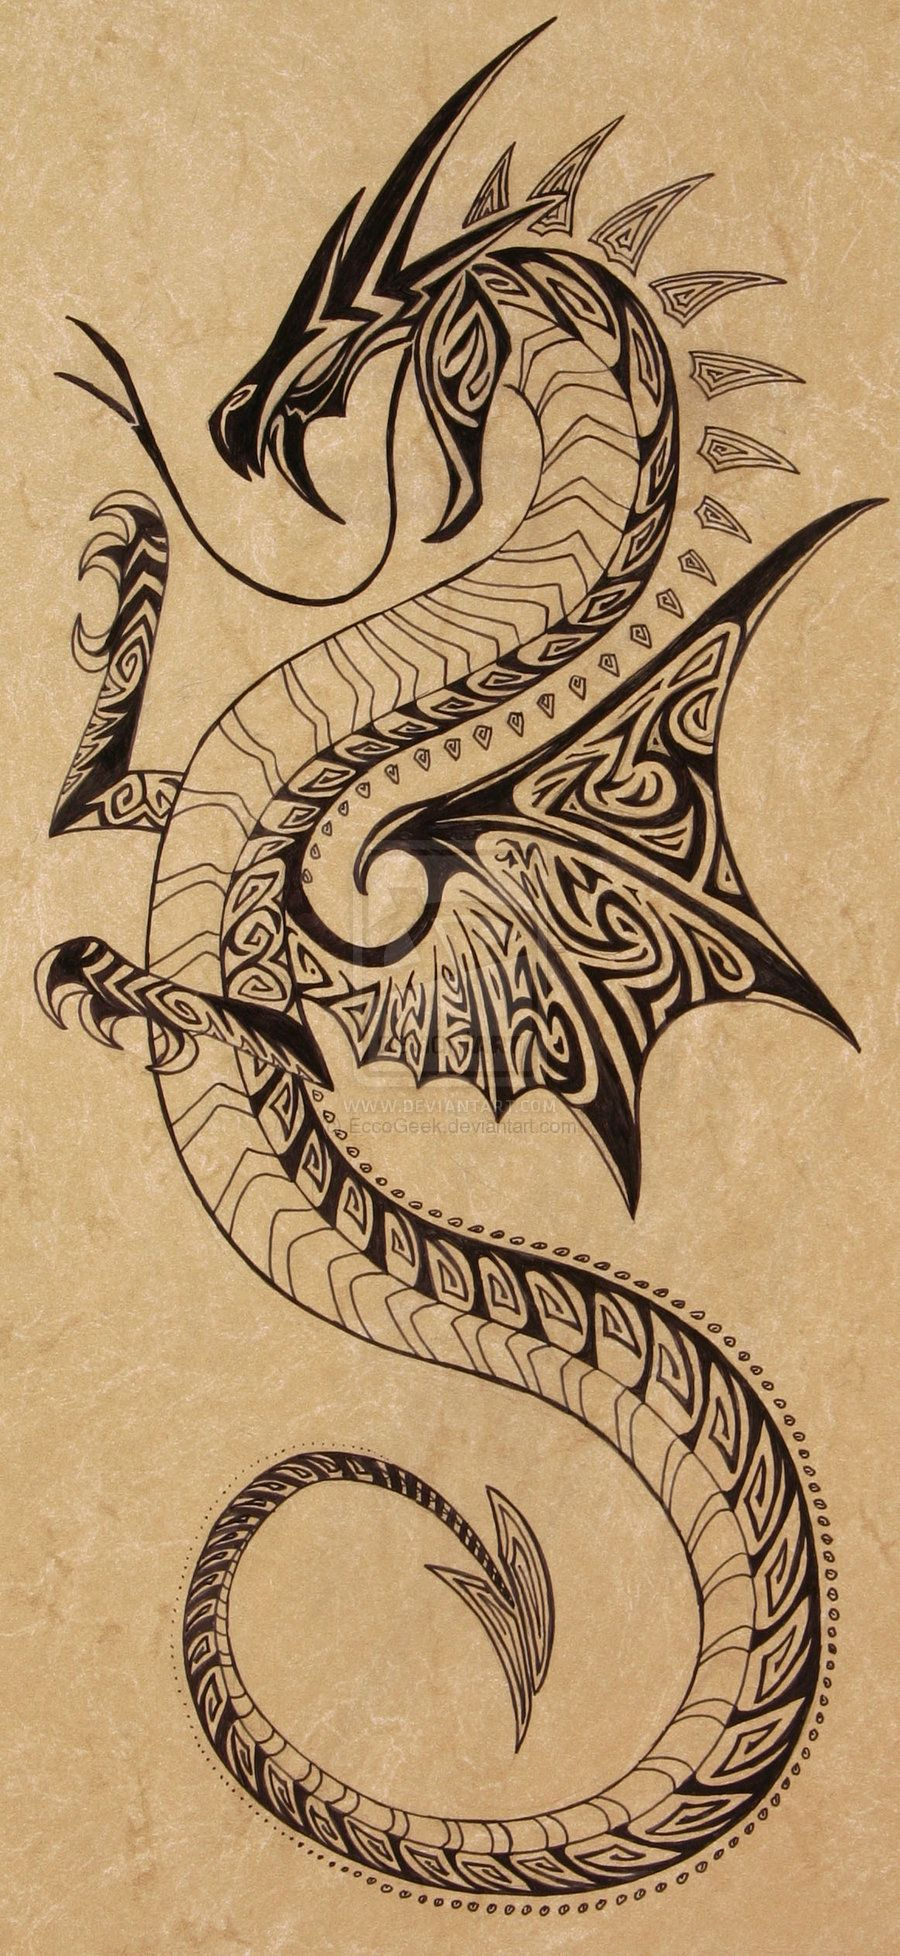 image result for norse sea serpent tattoo norse symbols